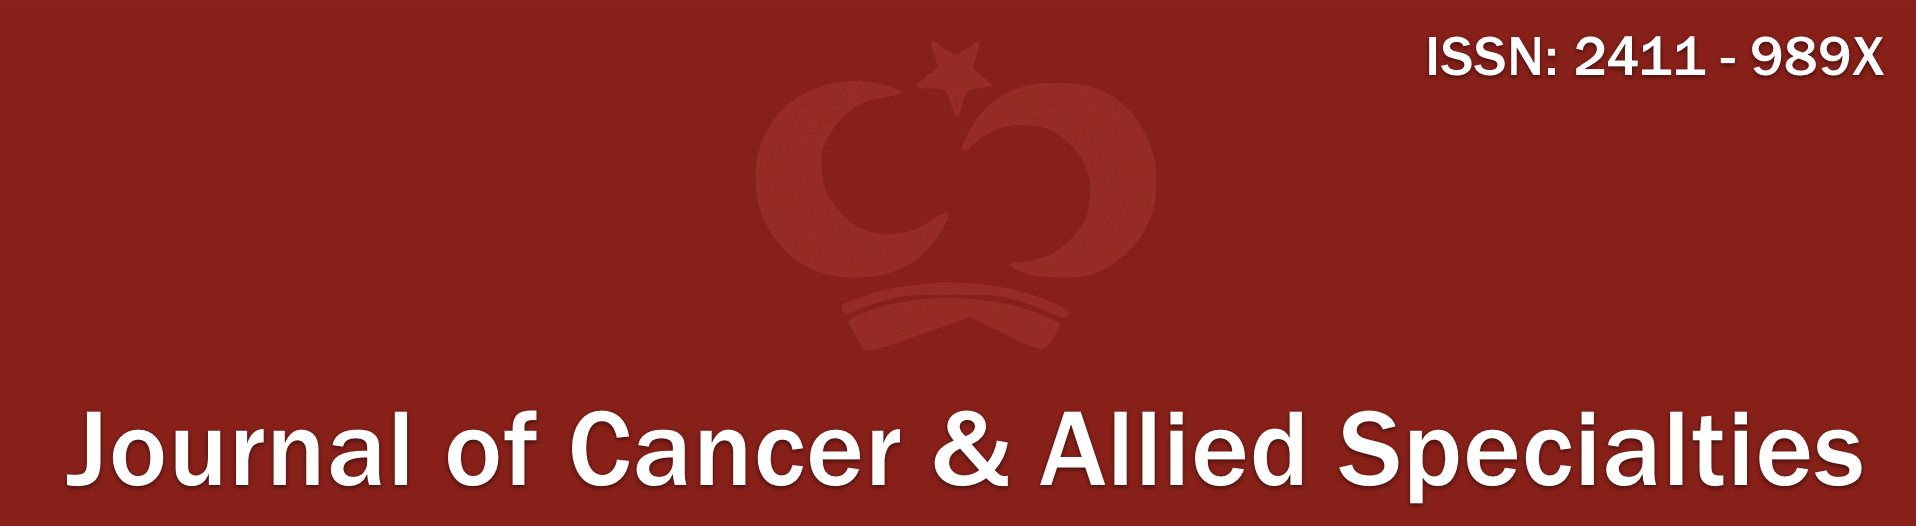 Journal of Cancer & Allied Specialties